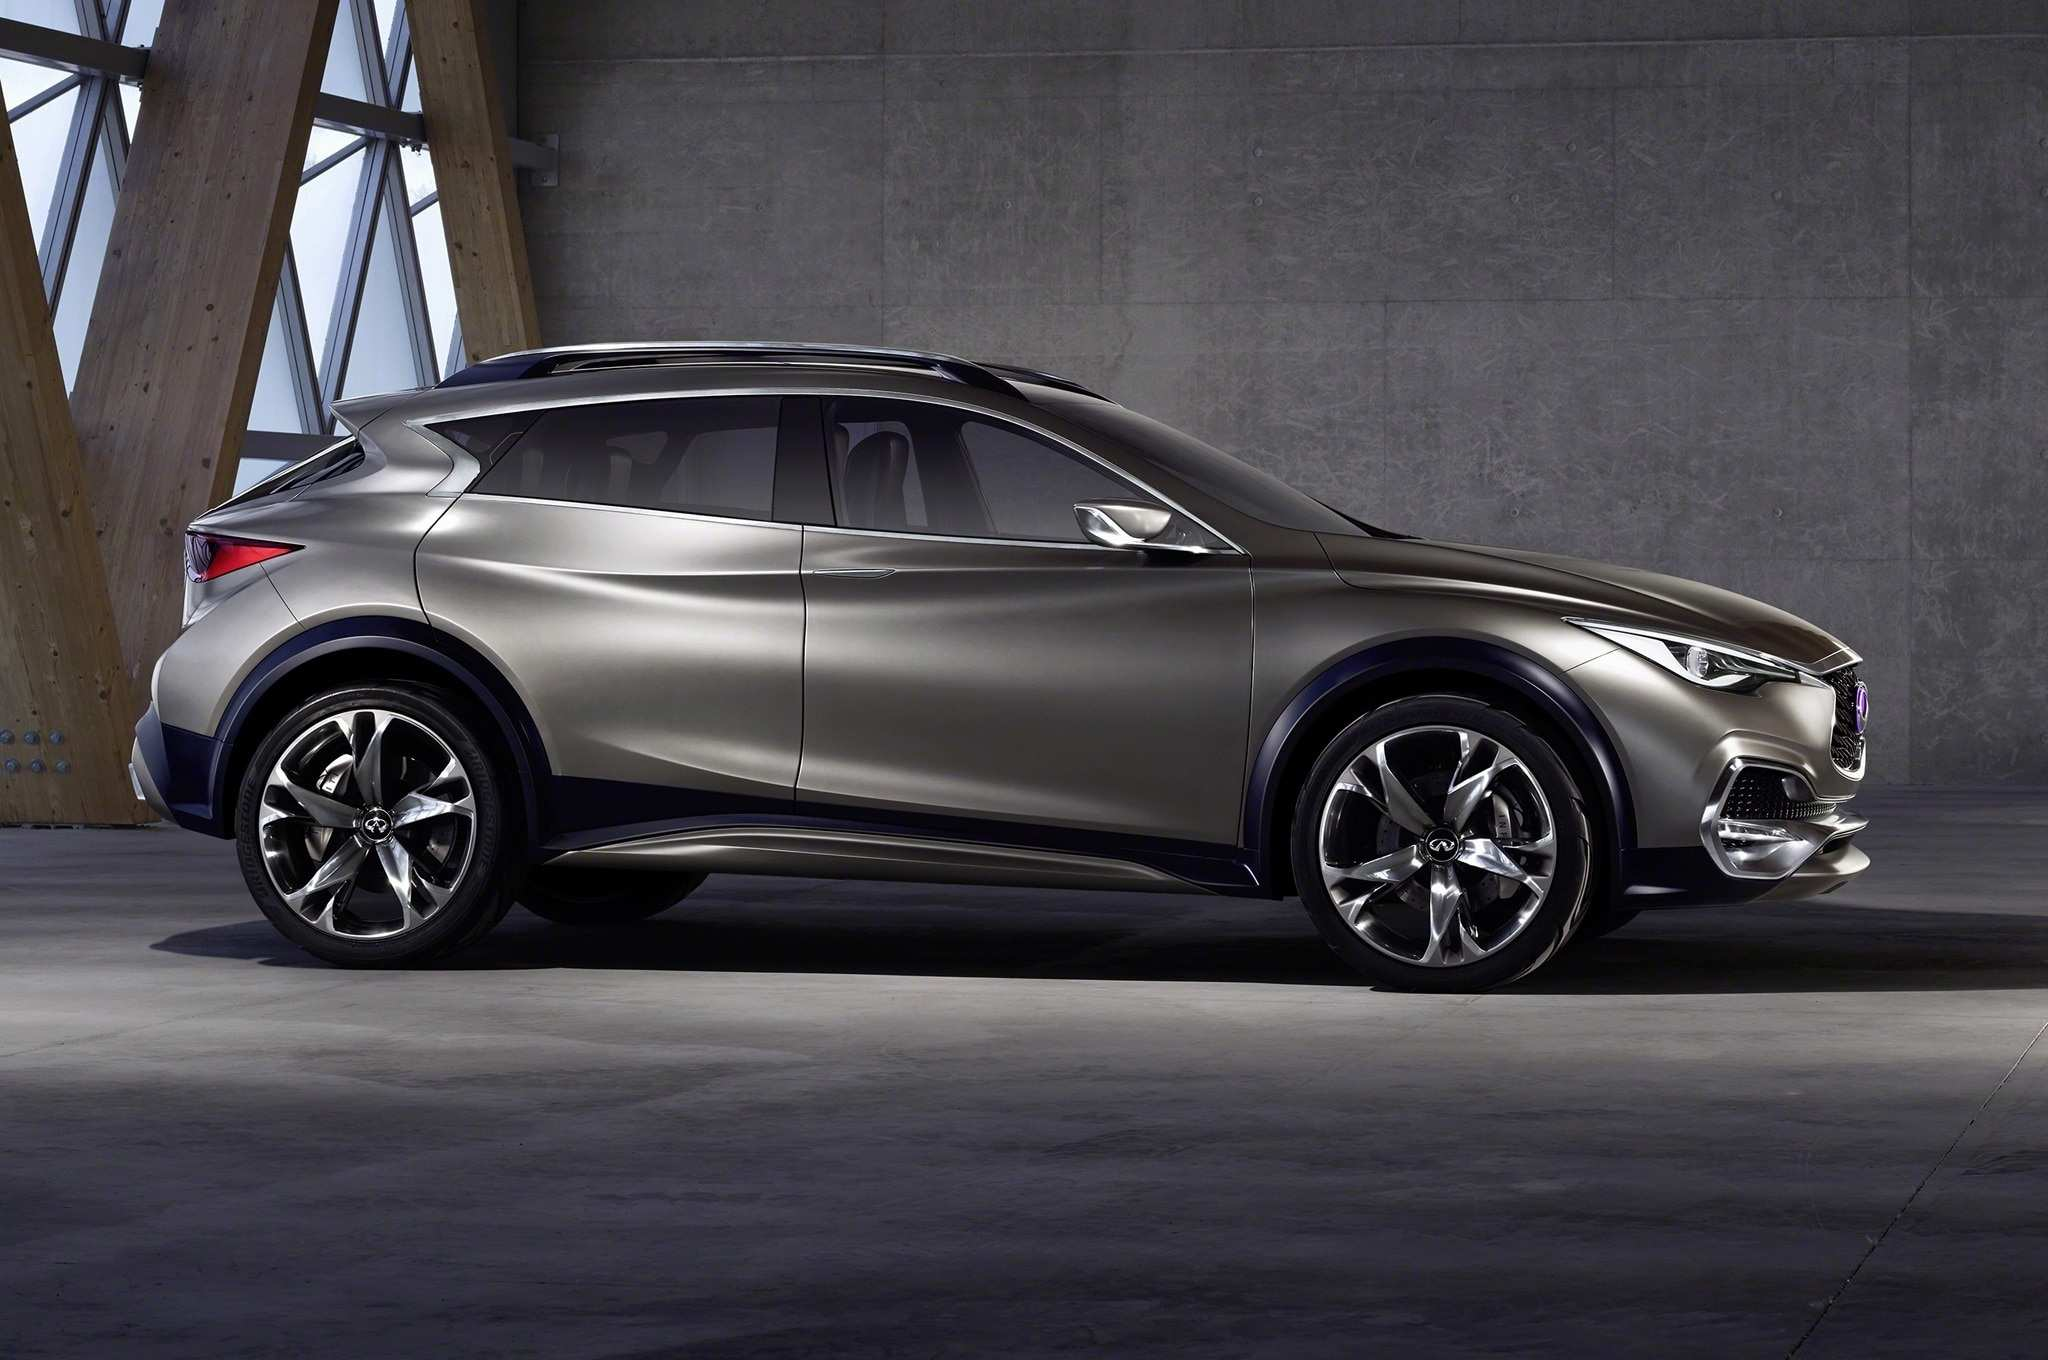 22 The Best Infiniti Cars For 2020 History